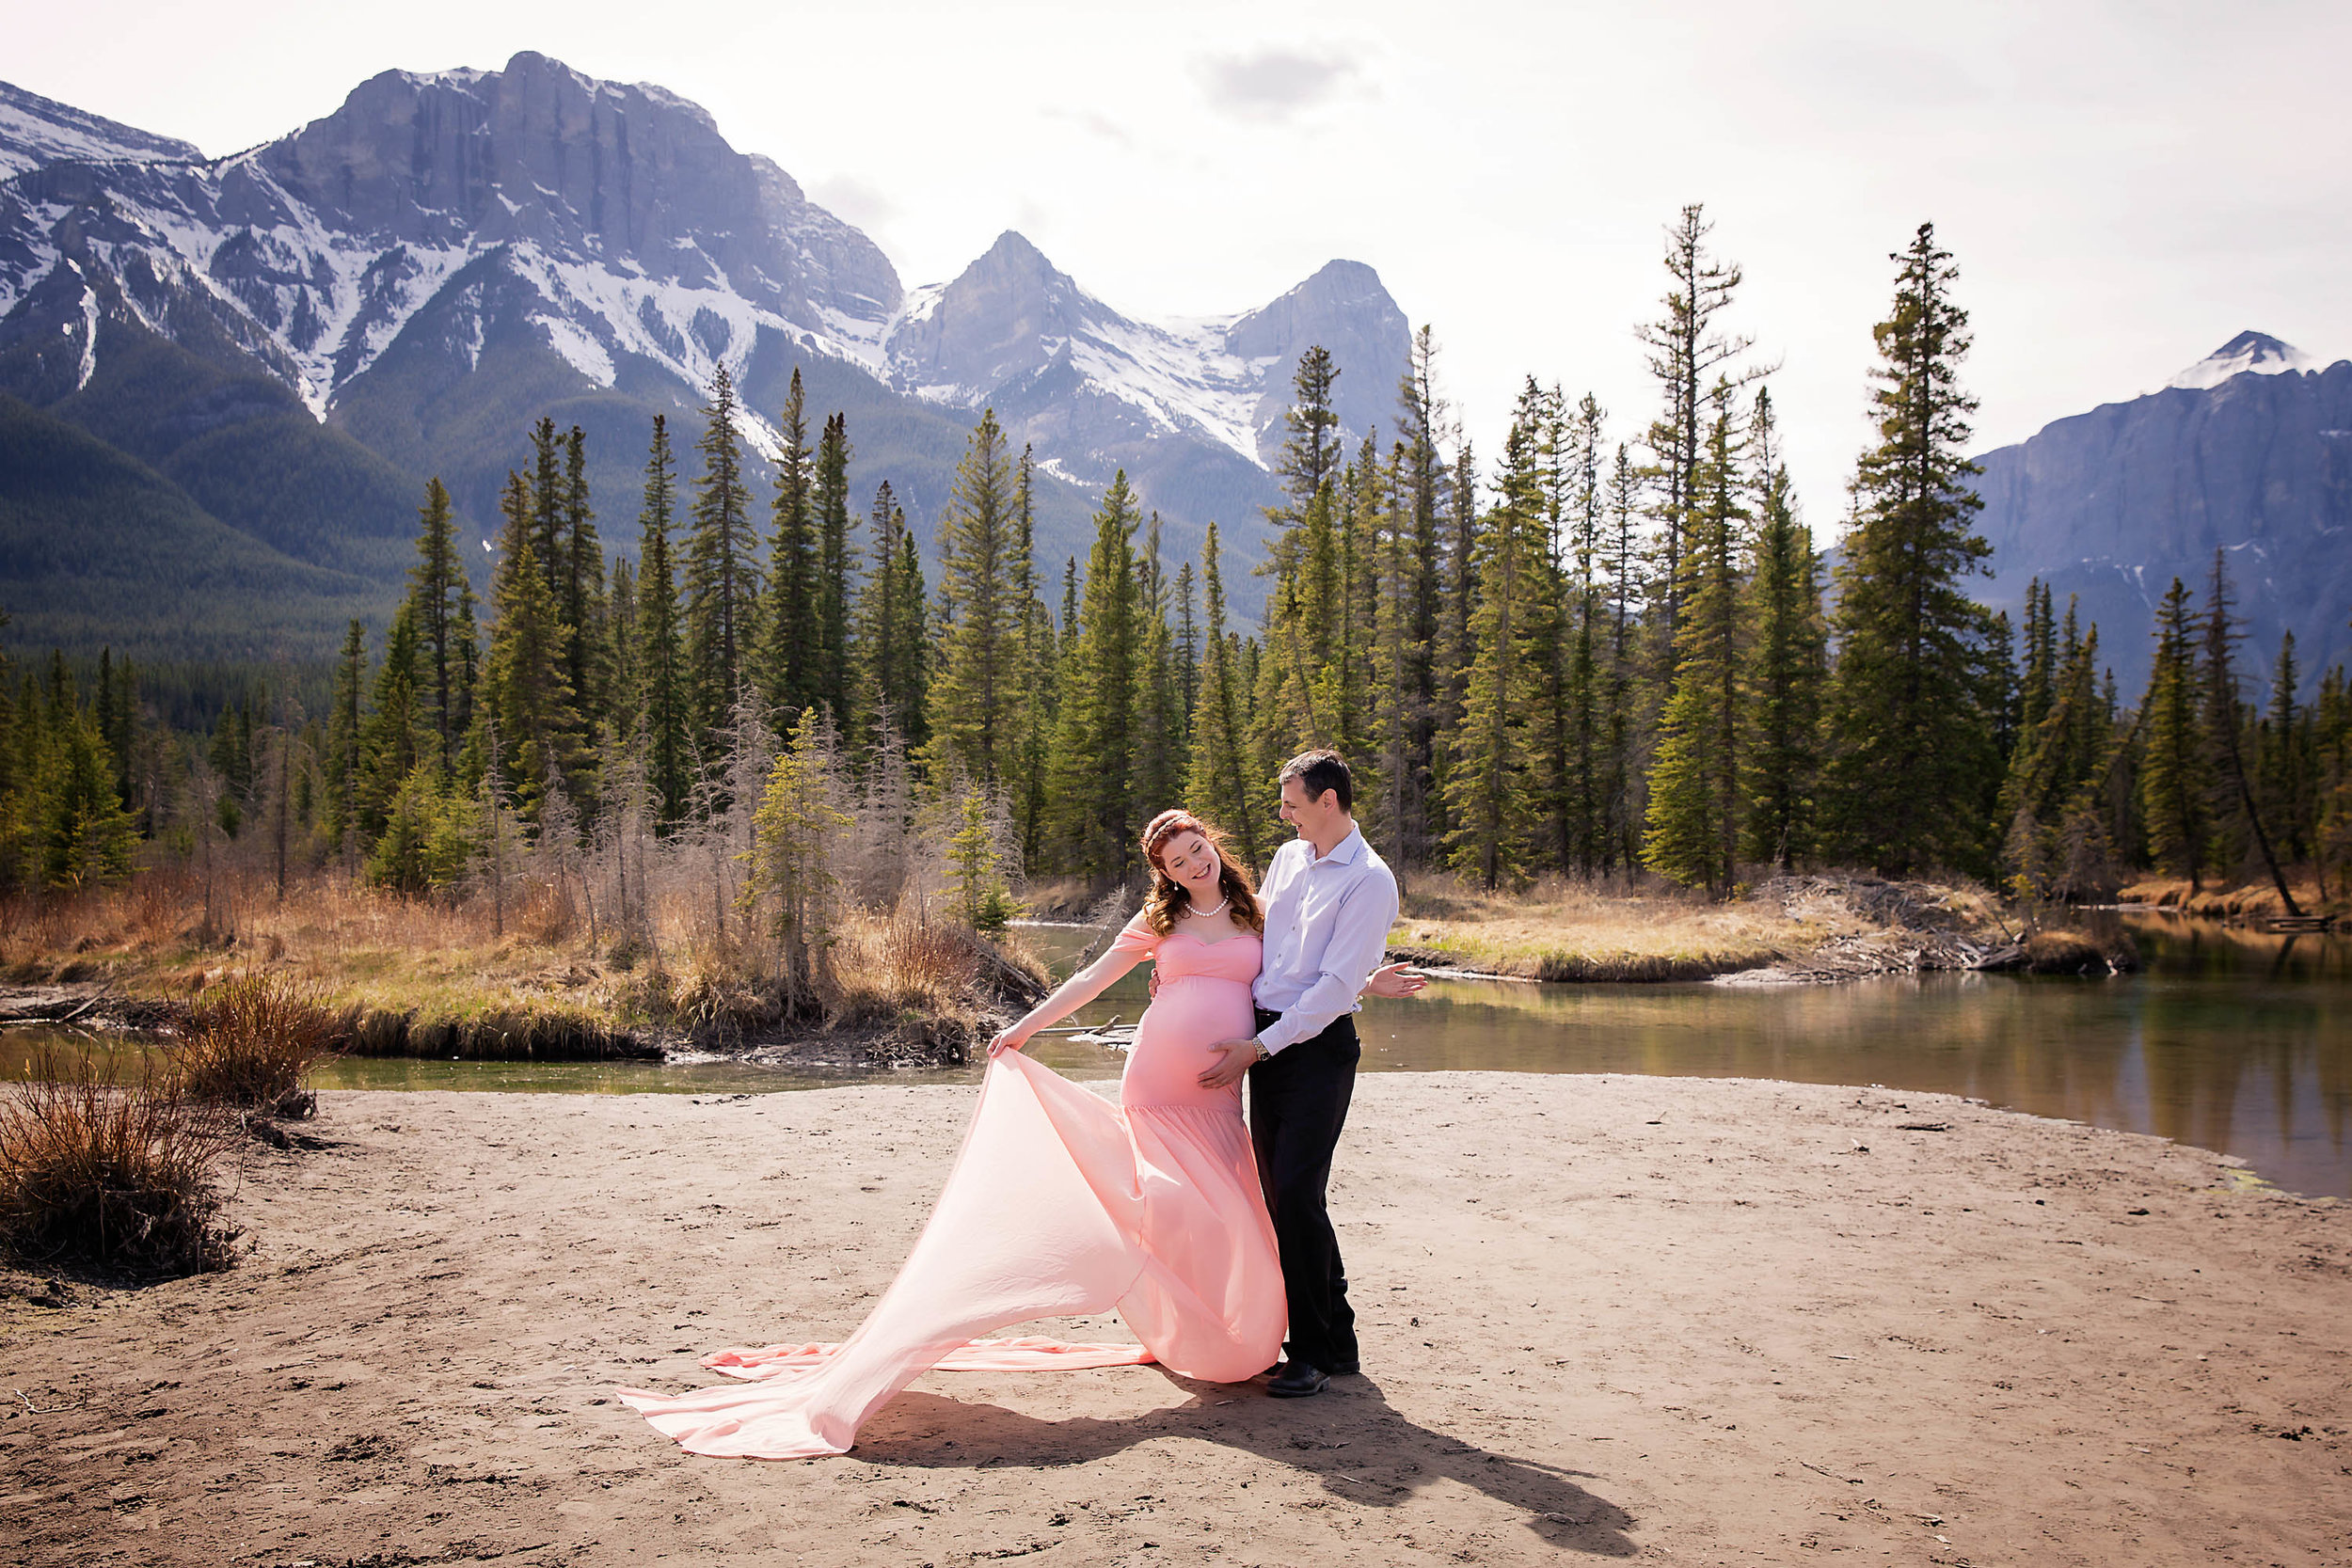 Parents to be are posing in this maternity mountain photoshoot. Mama is wearing a beautiful pink dress. Calgary, Alberta